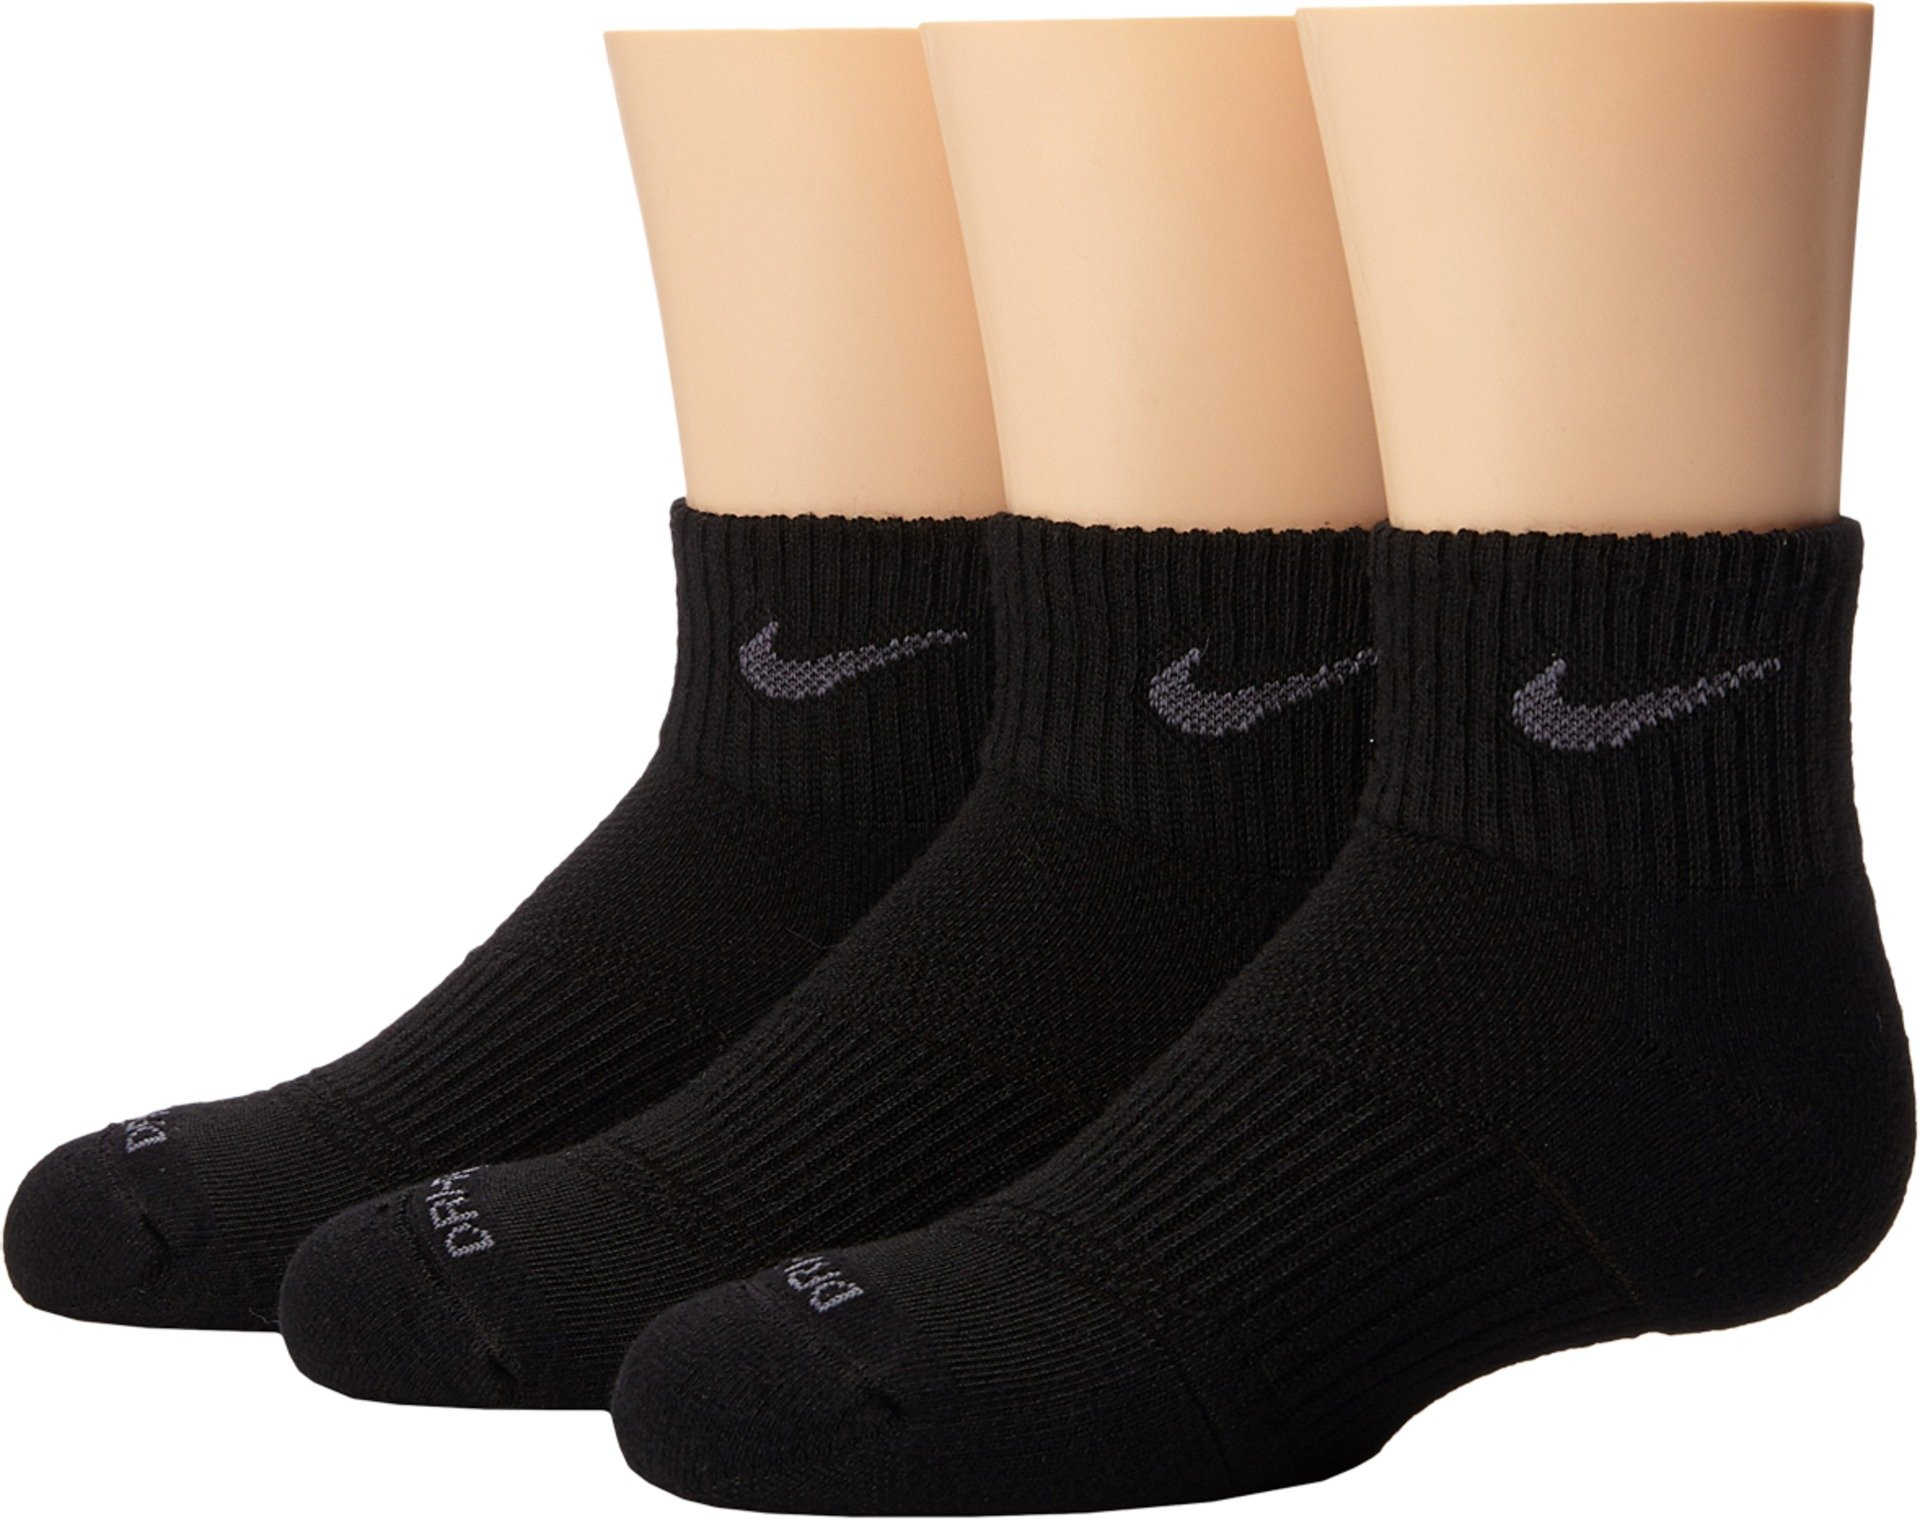 Nike Dri-FIT Cushion Quarter Athletic Training Sock 3 Pair Pack, Black, S 4-6